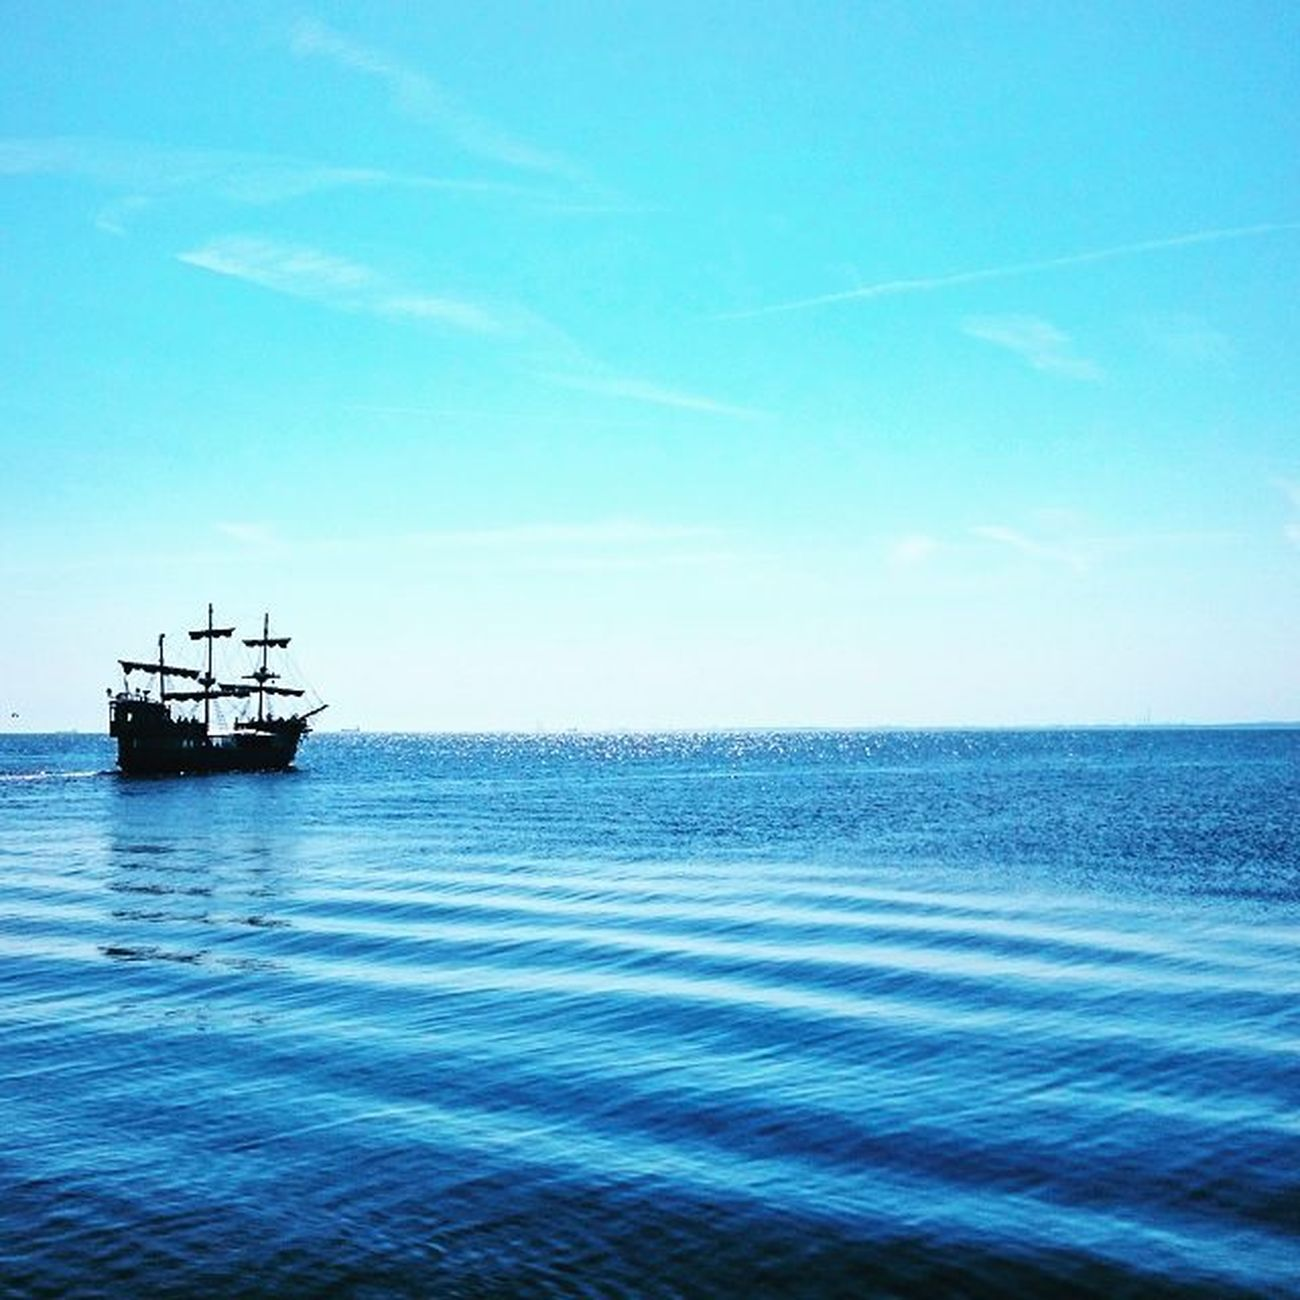 Gdynia Sea Holiday2015 Sun Boat Water Blue Sky